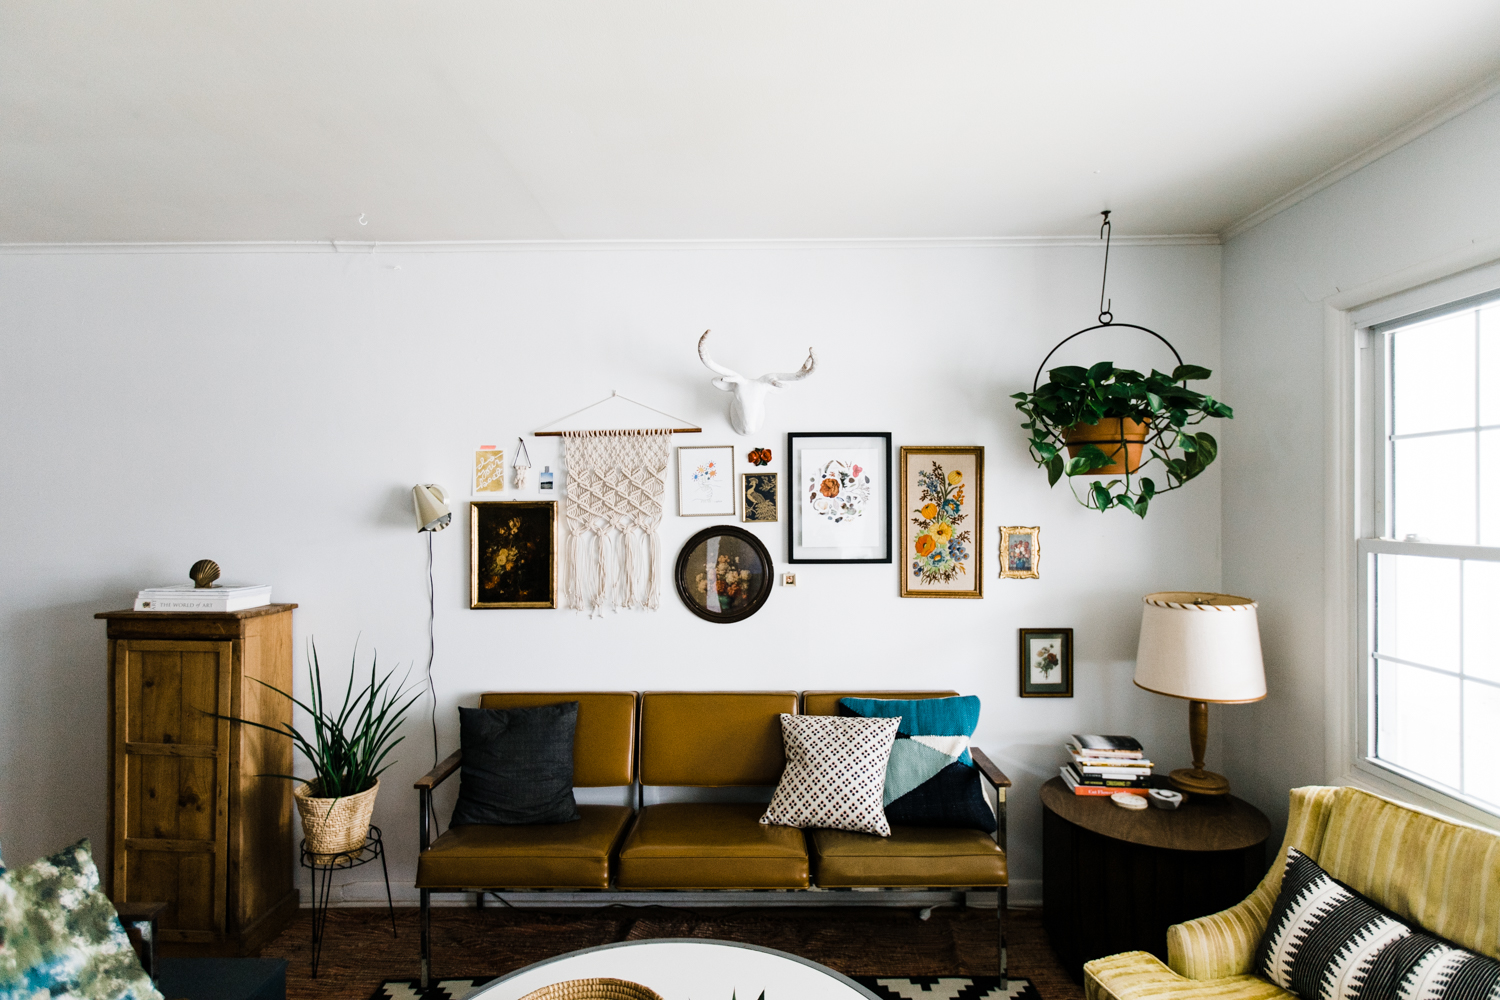 Abbey-Wells-Home-eclectic-colorful-home-WEB-69.jpg